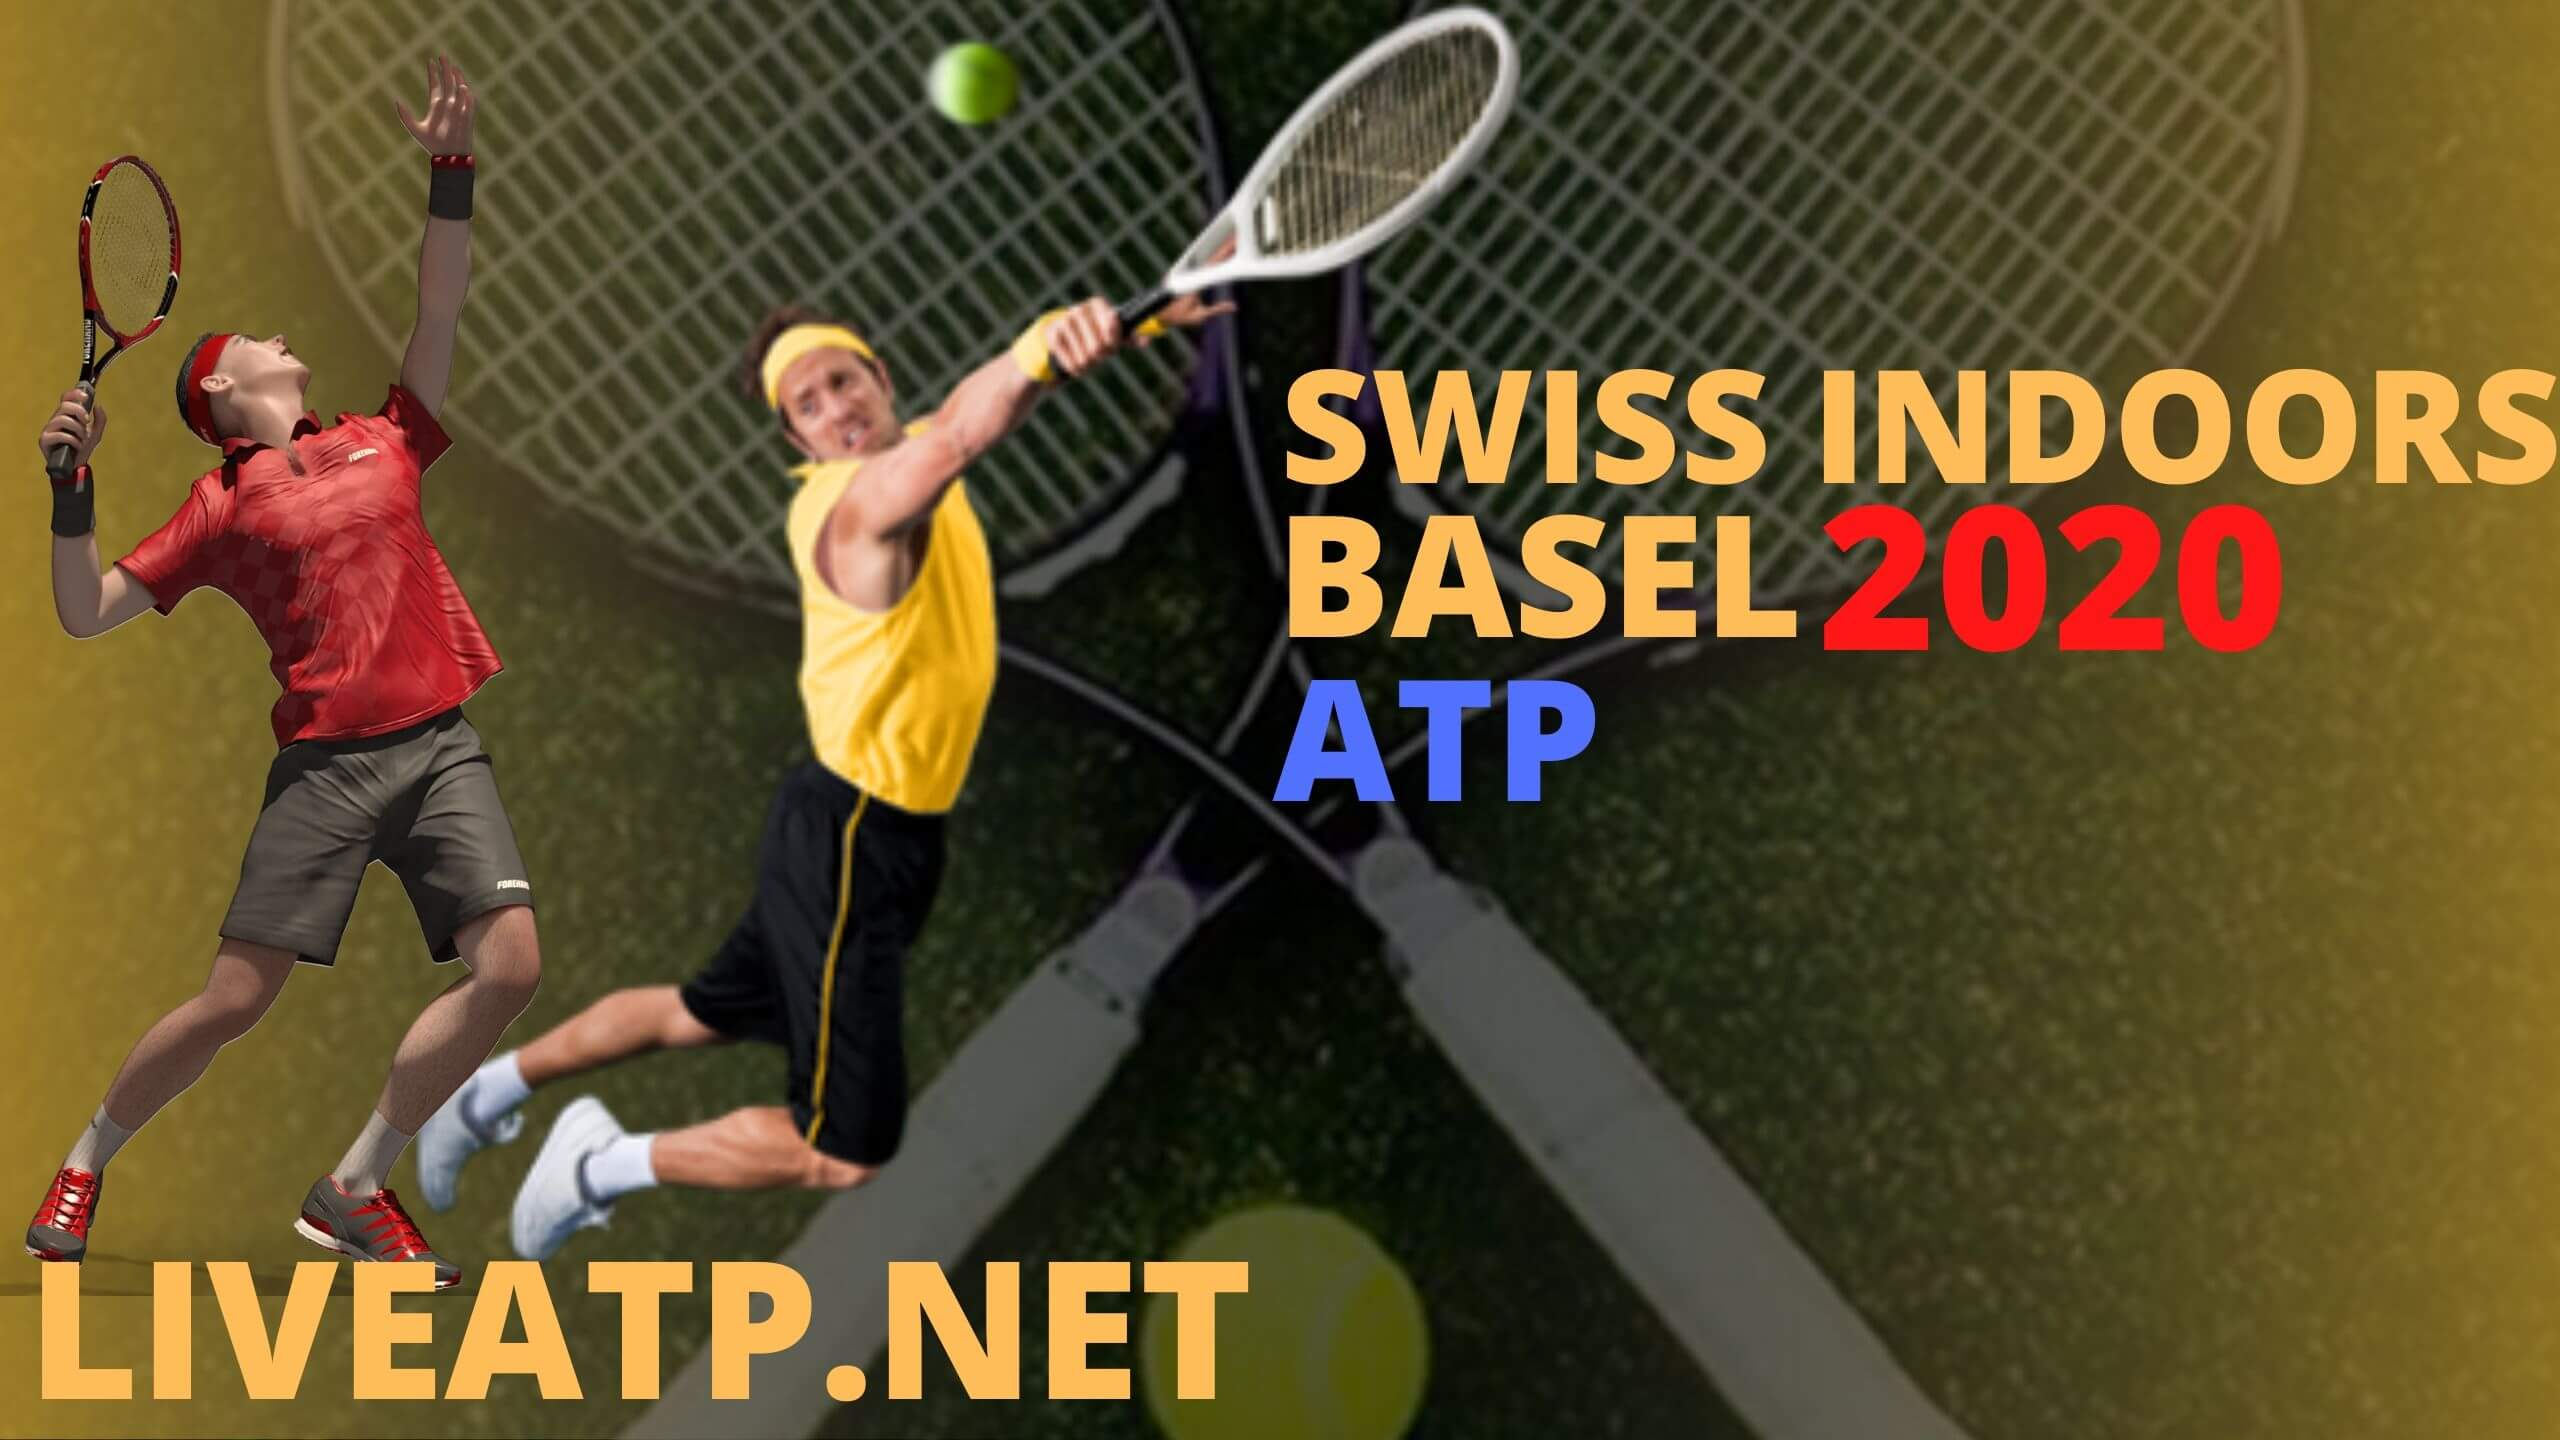 Swiss Indoors Basel Live Stream 2020 | Day 2